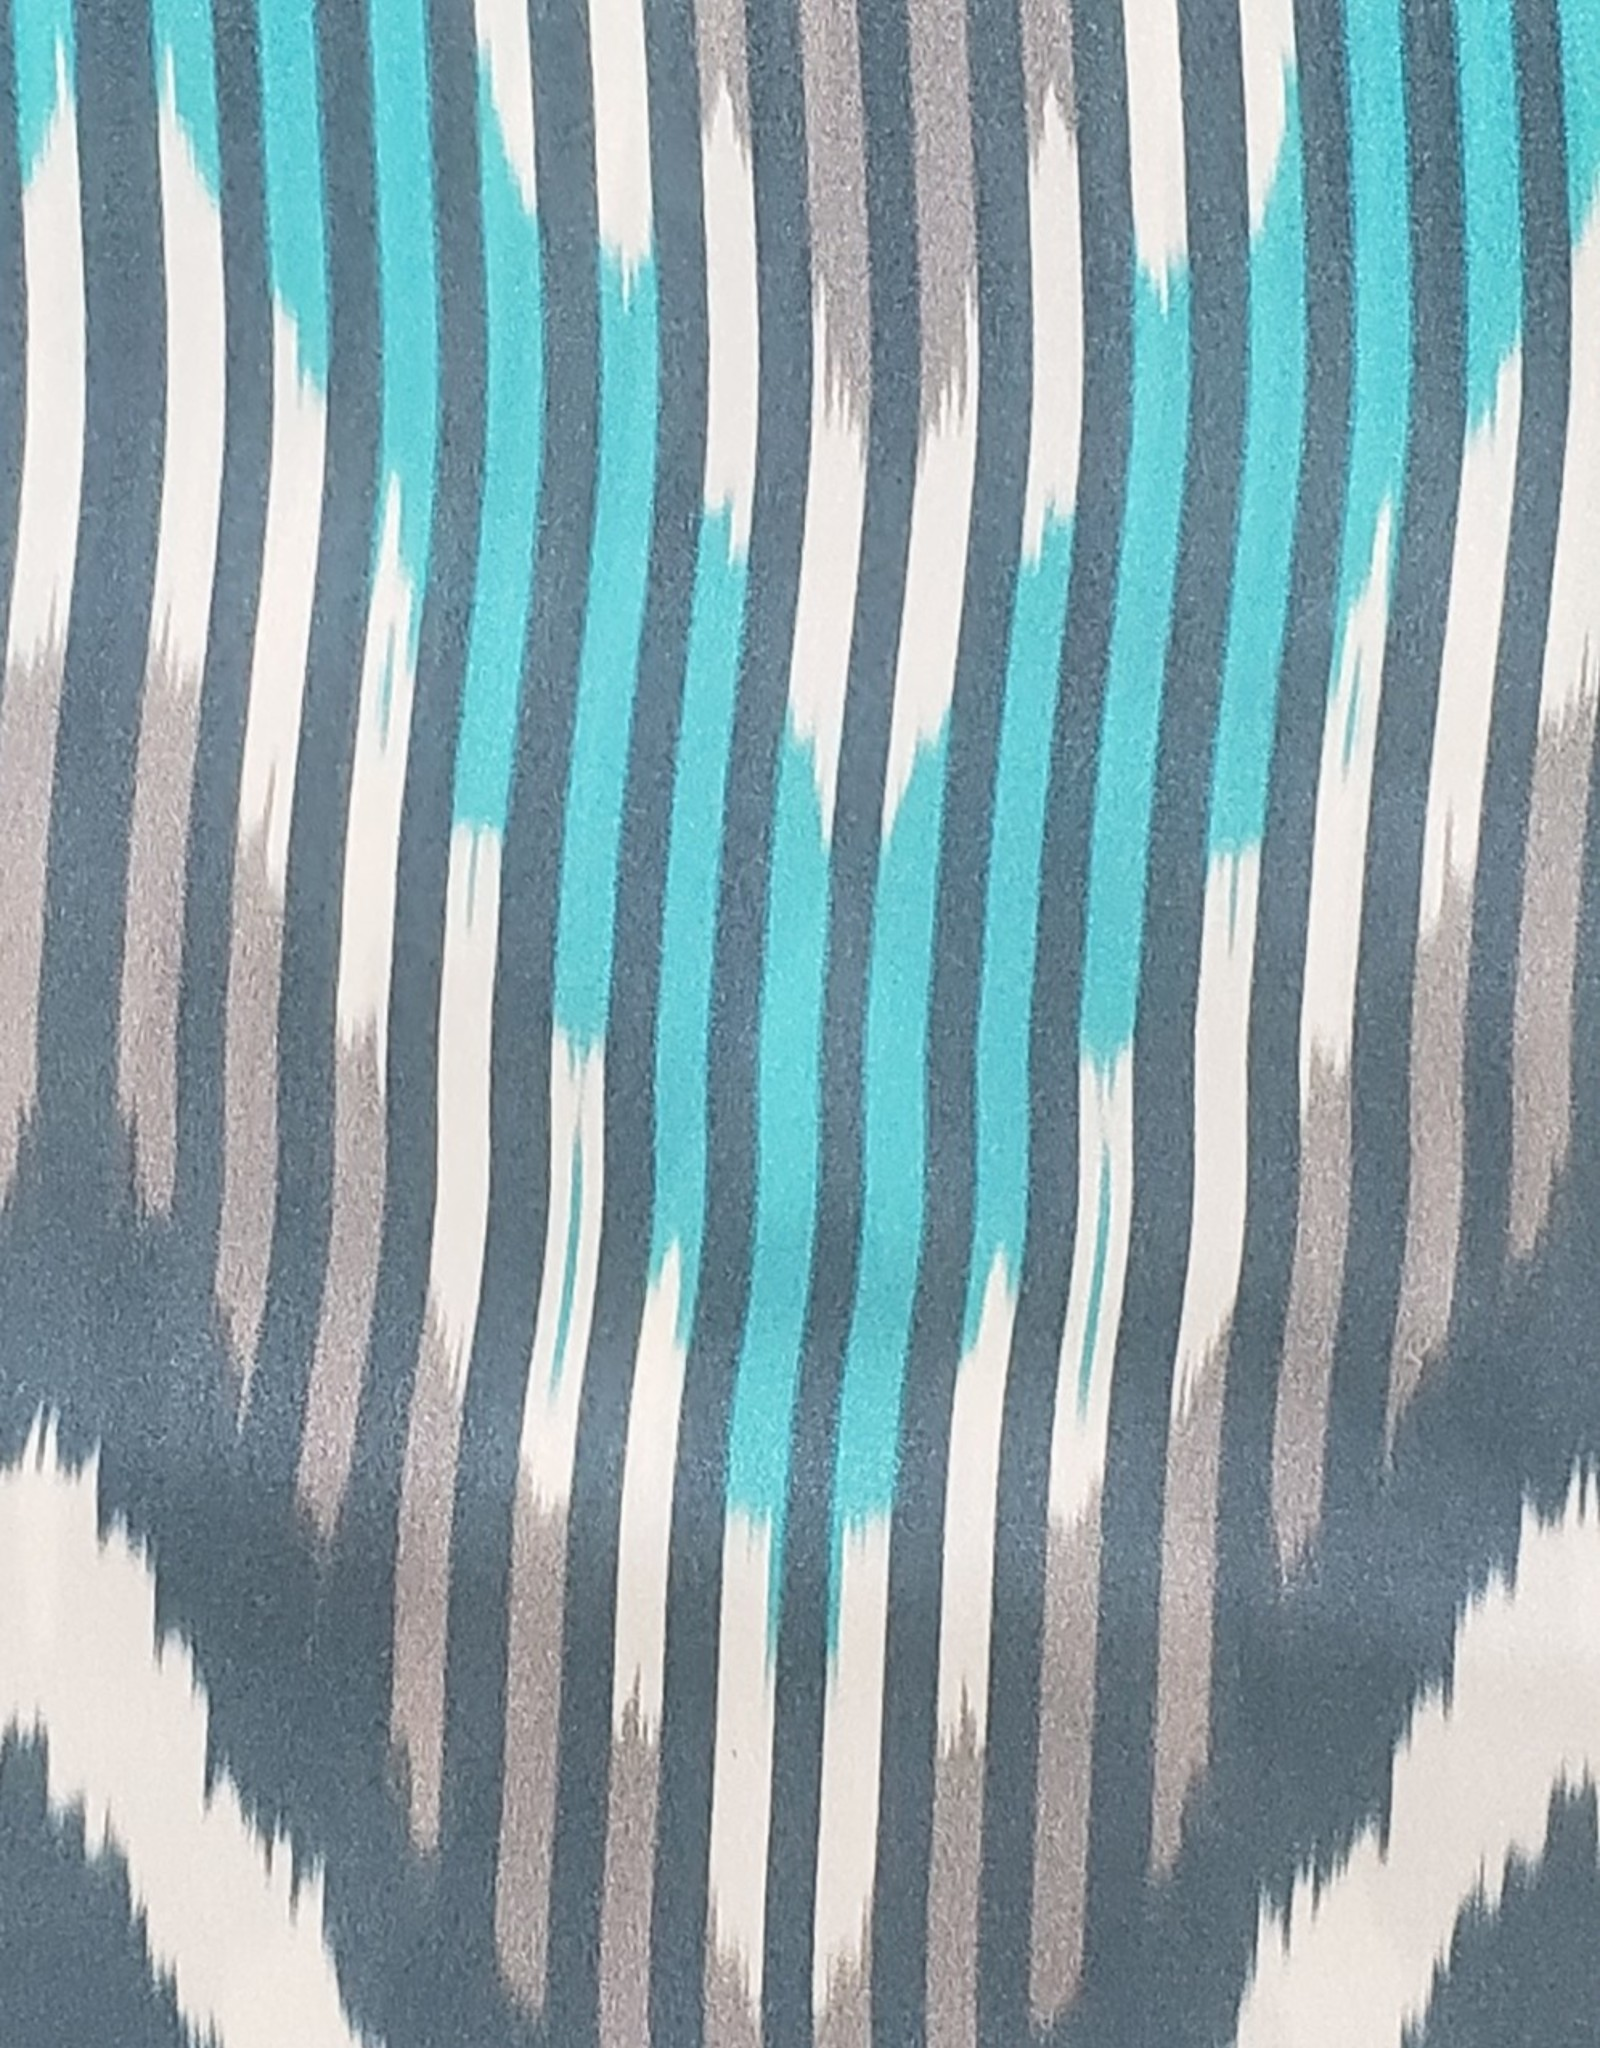 Wild Rag 33x33 100% Silk Teal Chevron Design